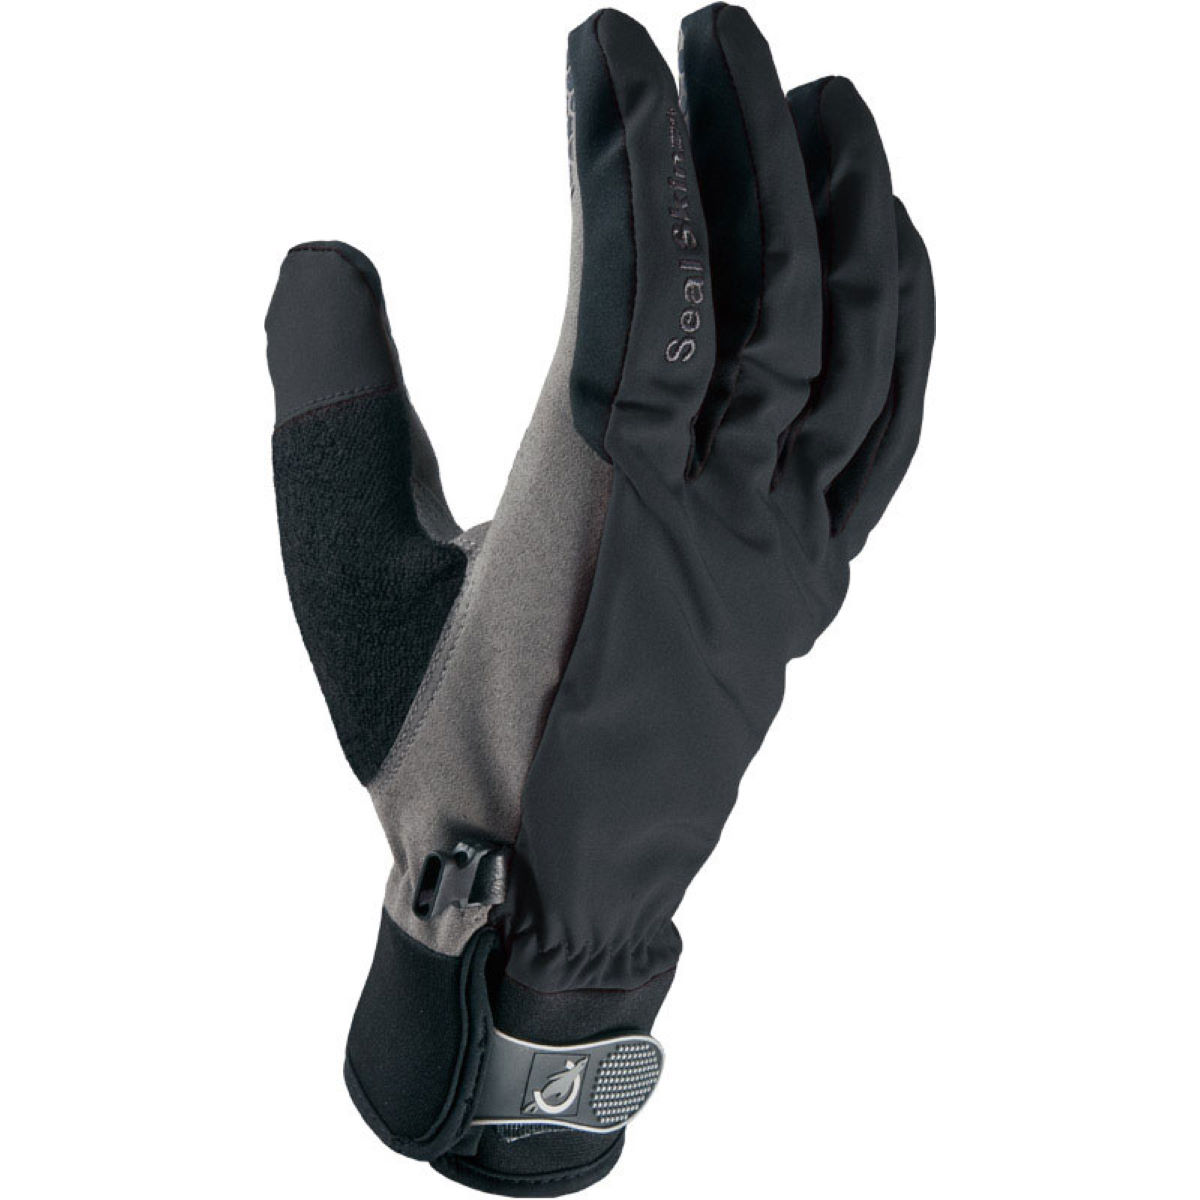 SealSkinz Women's All Weather Cycle Glove AW13